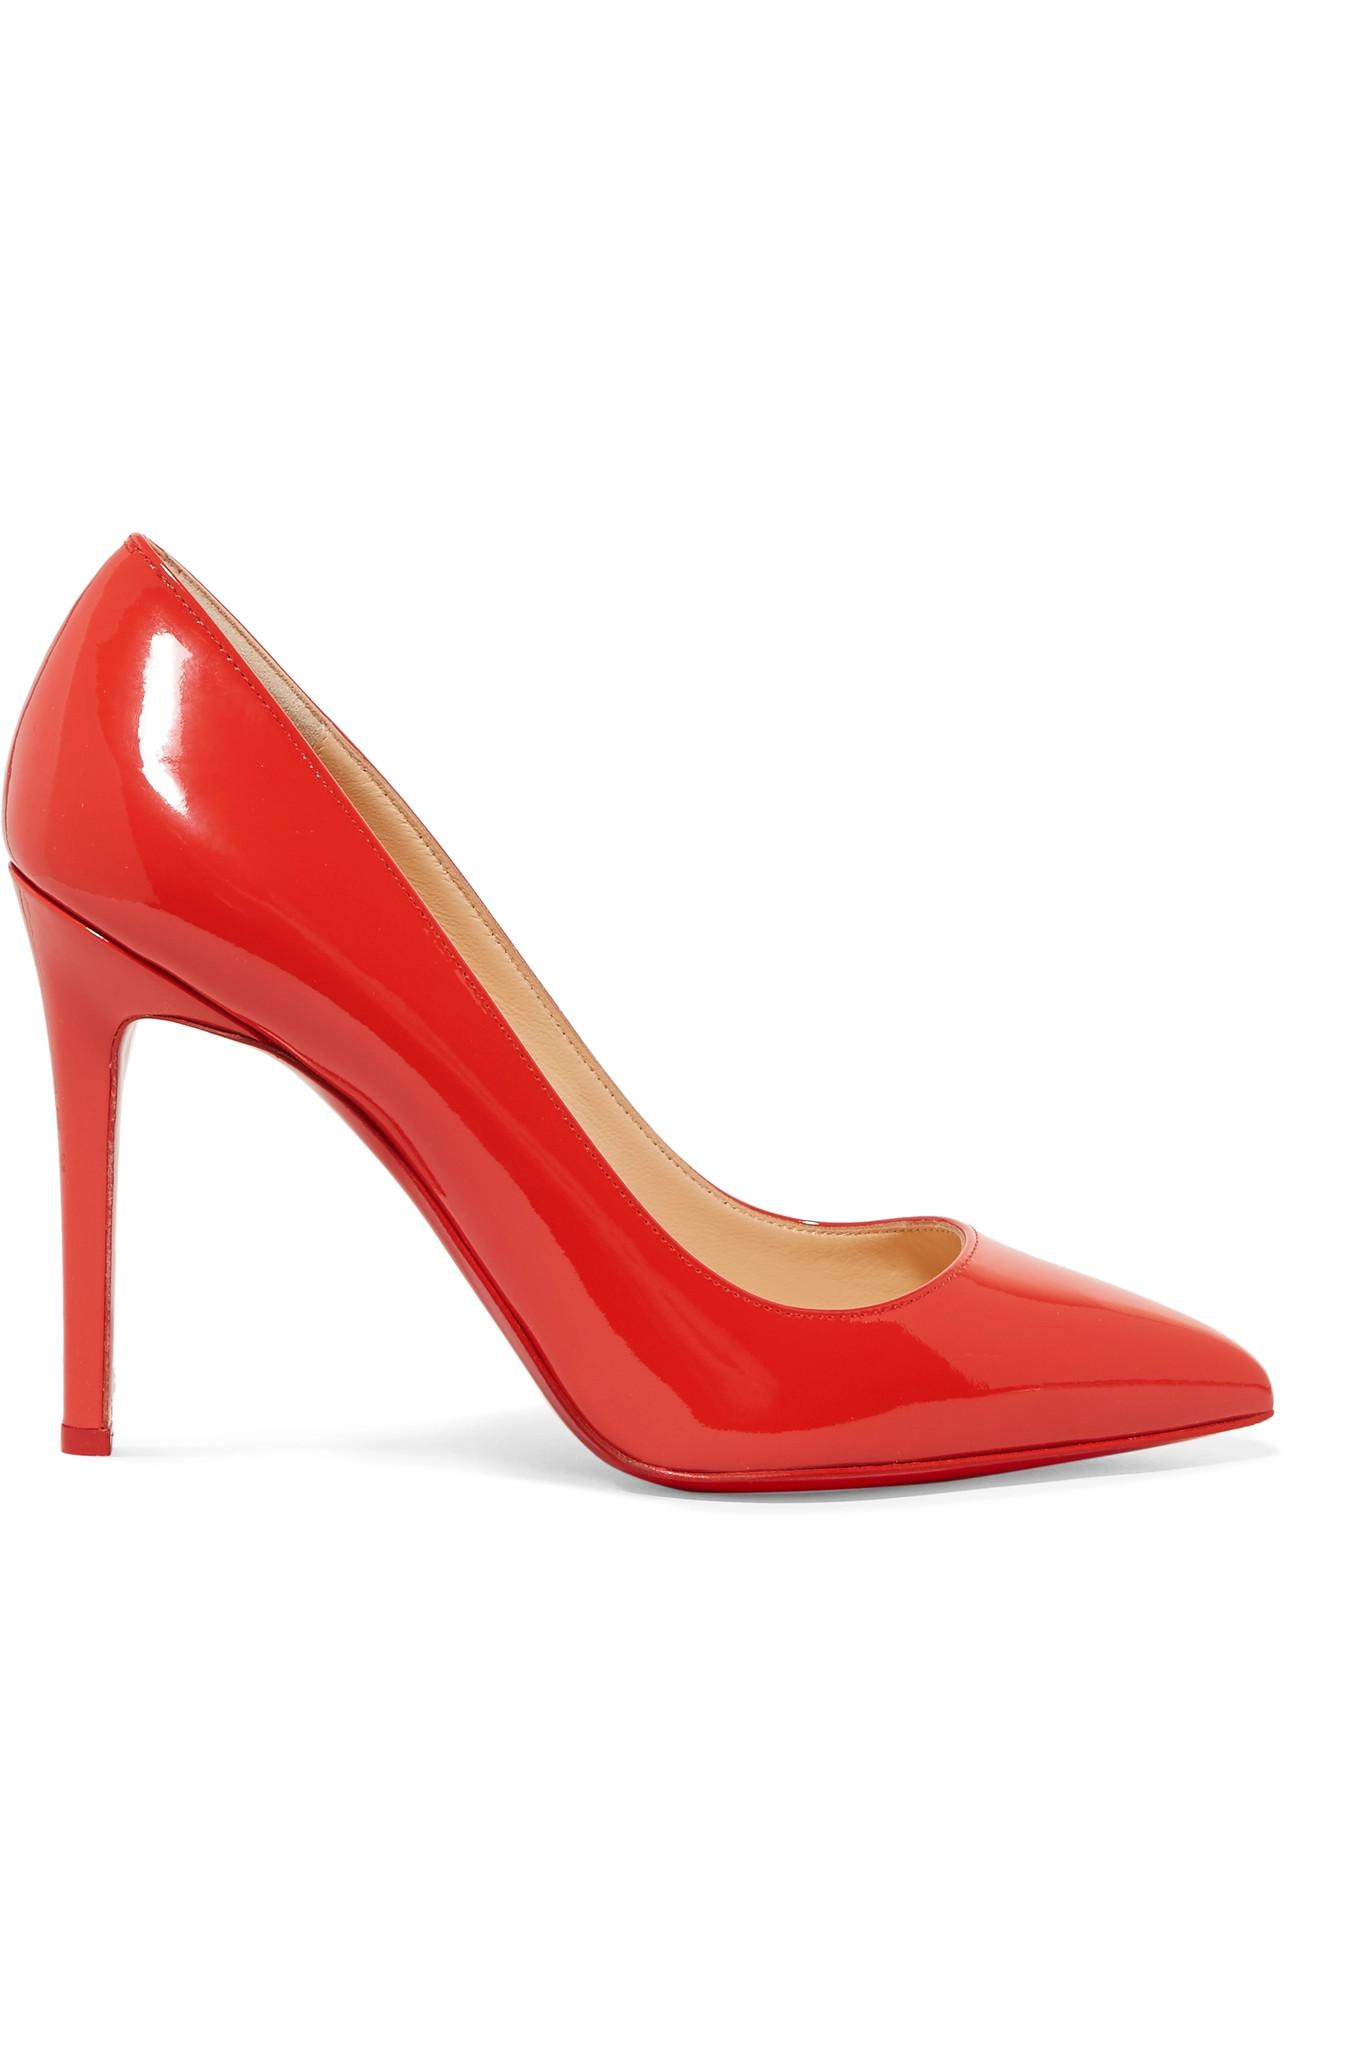 Pigalle 100 Patent-leather Pumps - Red Christian Louboutin KiB7EMA